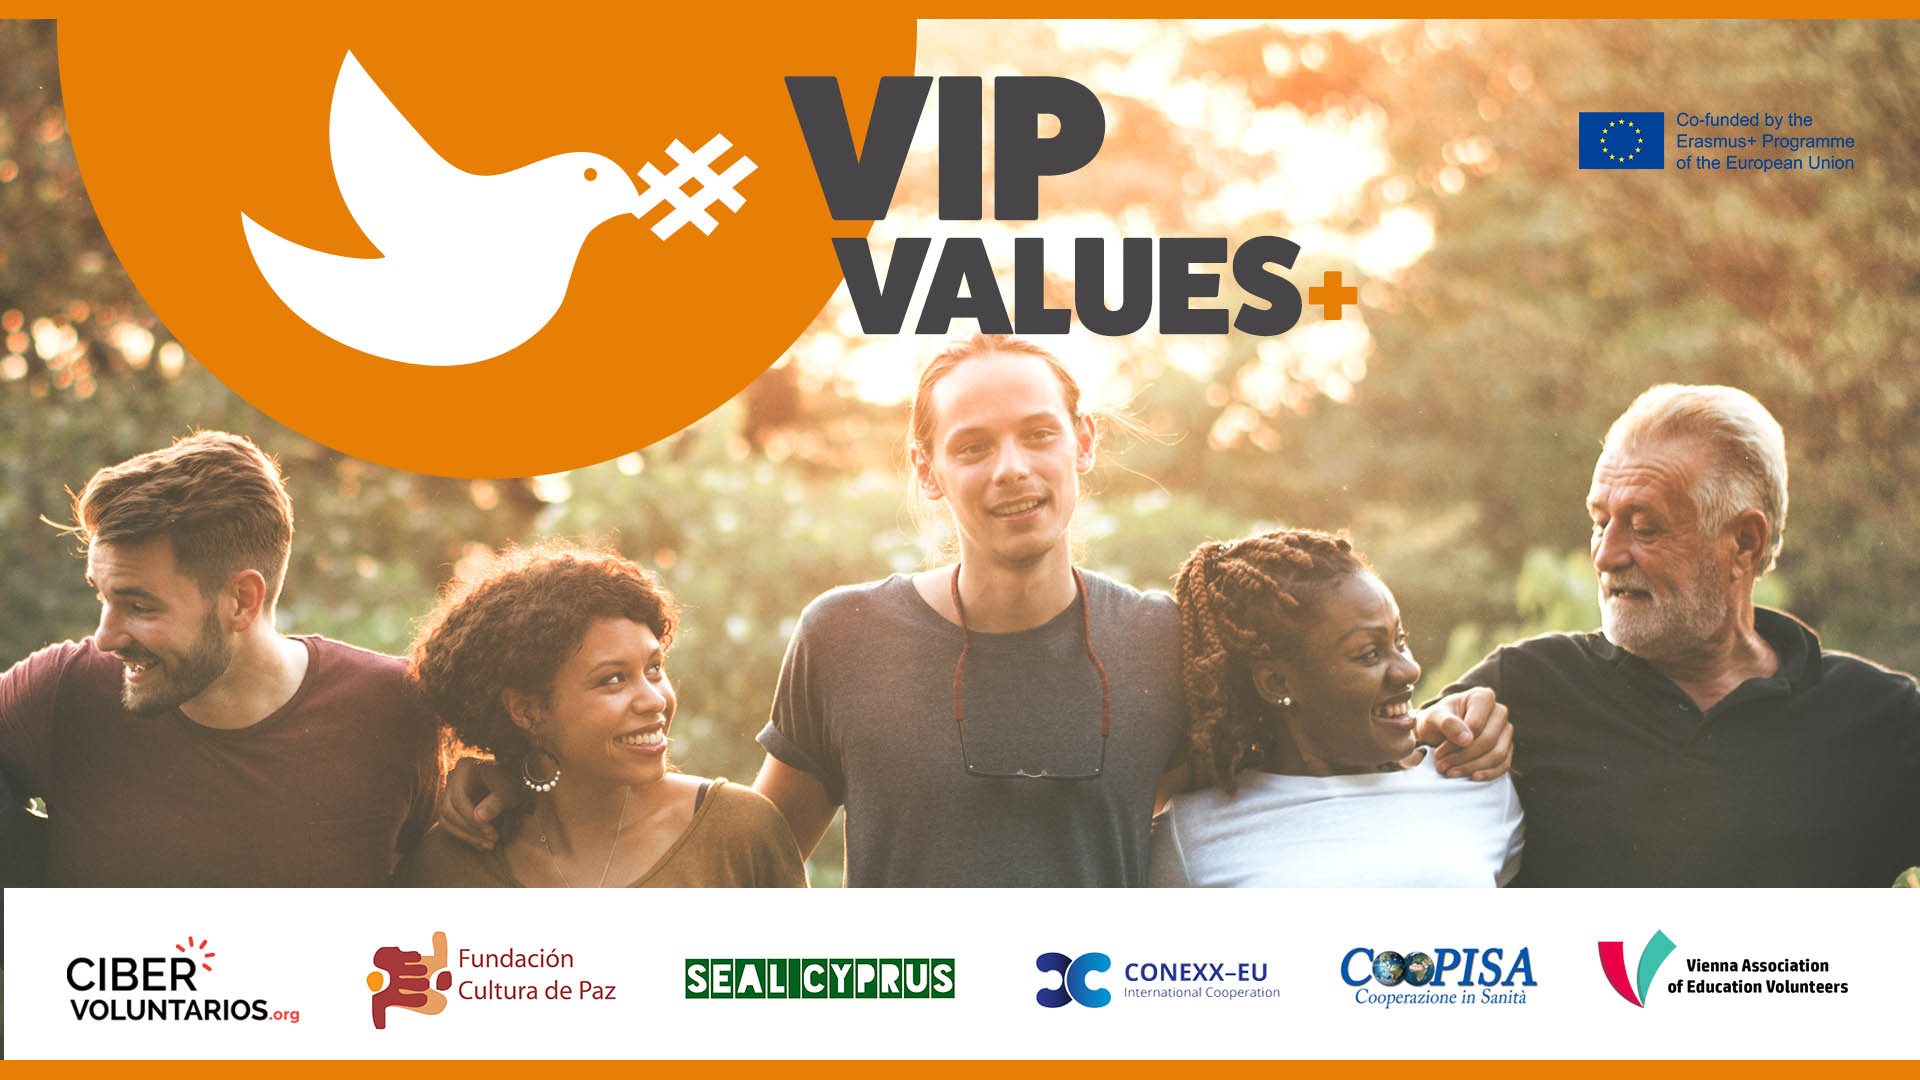 Discover the new VIPvalues+ website: Technology at the service of peace and socio-digital inclusion in Europe